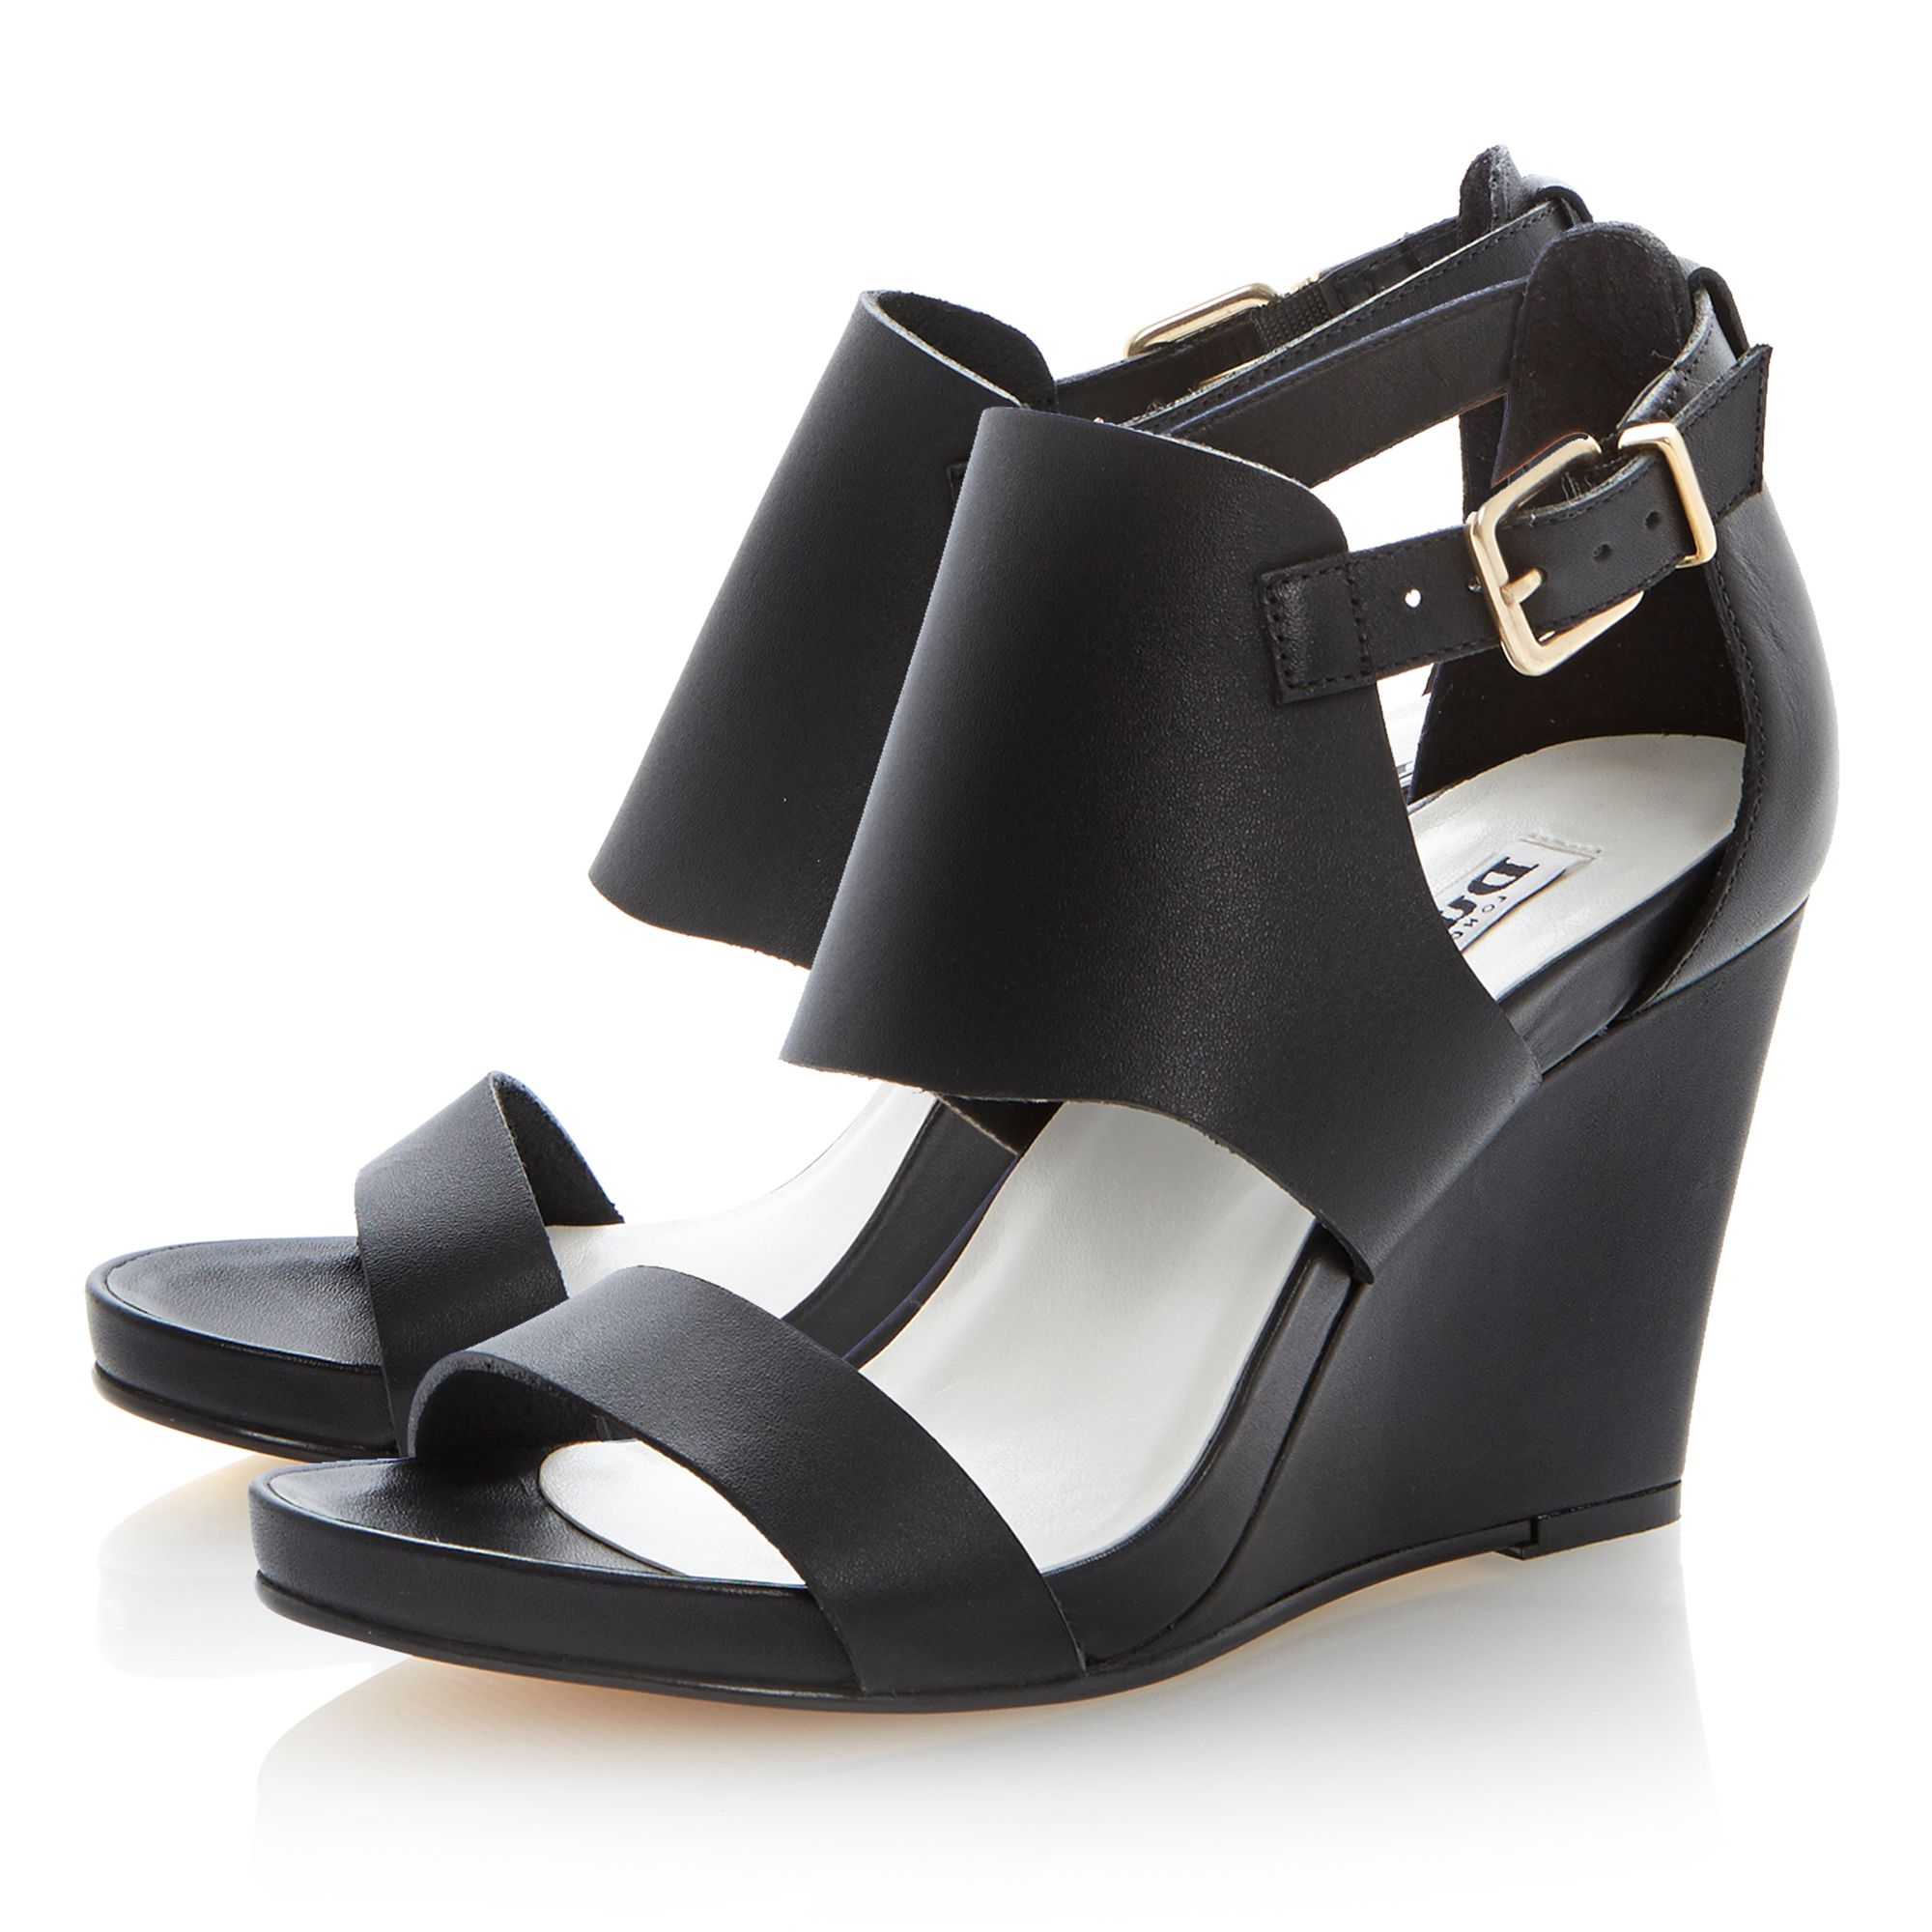 Givara leather wedge buckle sandals